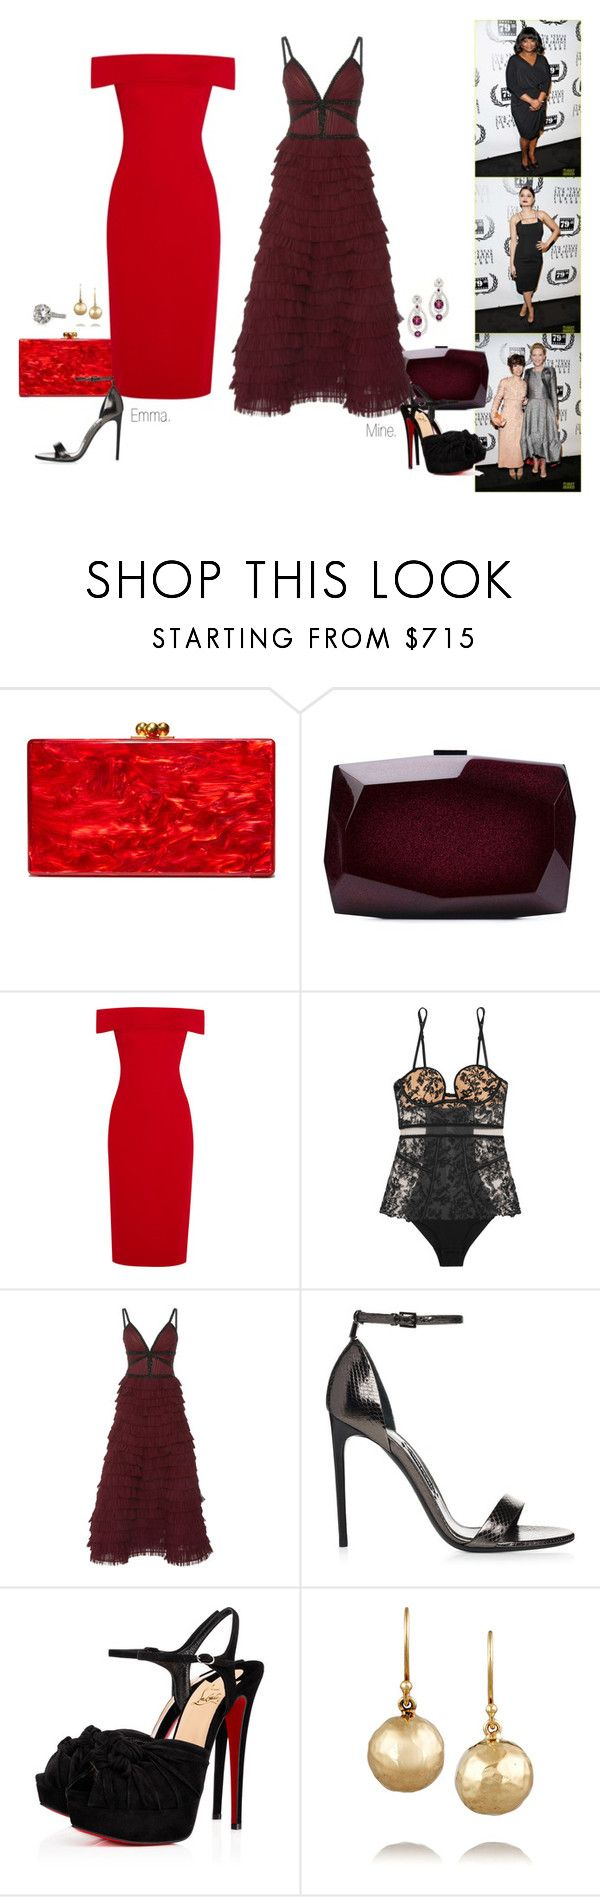 """2014 New York Film Critics Circle Awards Ceremony."" by foreverforbiddenromancefashion ❤ liked on Polyvore featuring Edie Parker, Monique Lhuillier, Cushnie Et Ochs, La Perla, LALO, Christian Louboutin, Chanel and Ippolita"